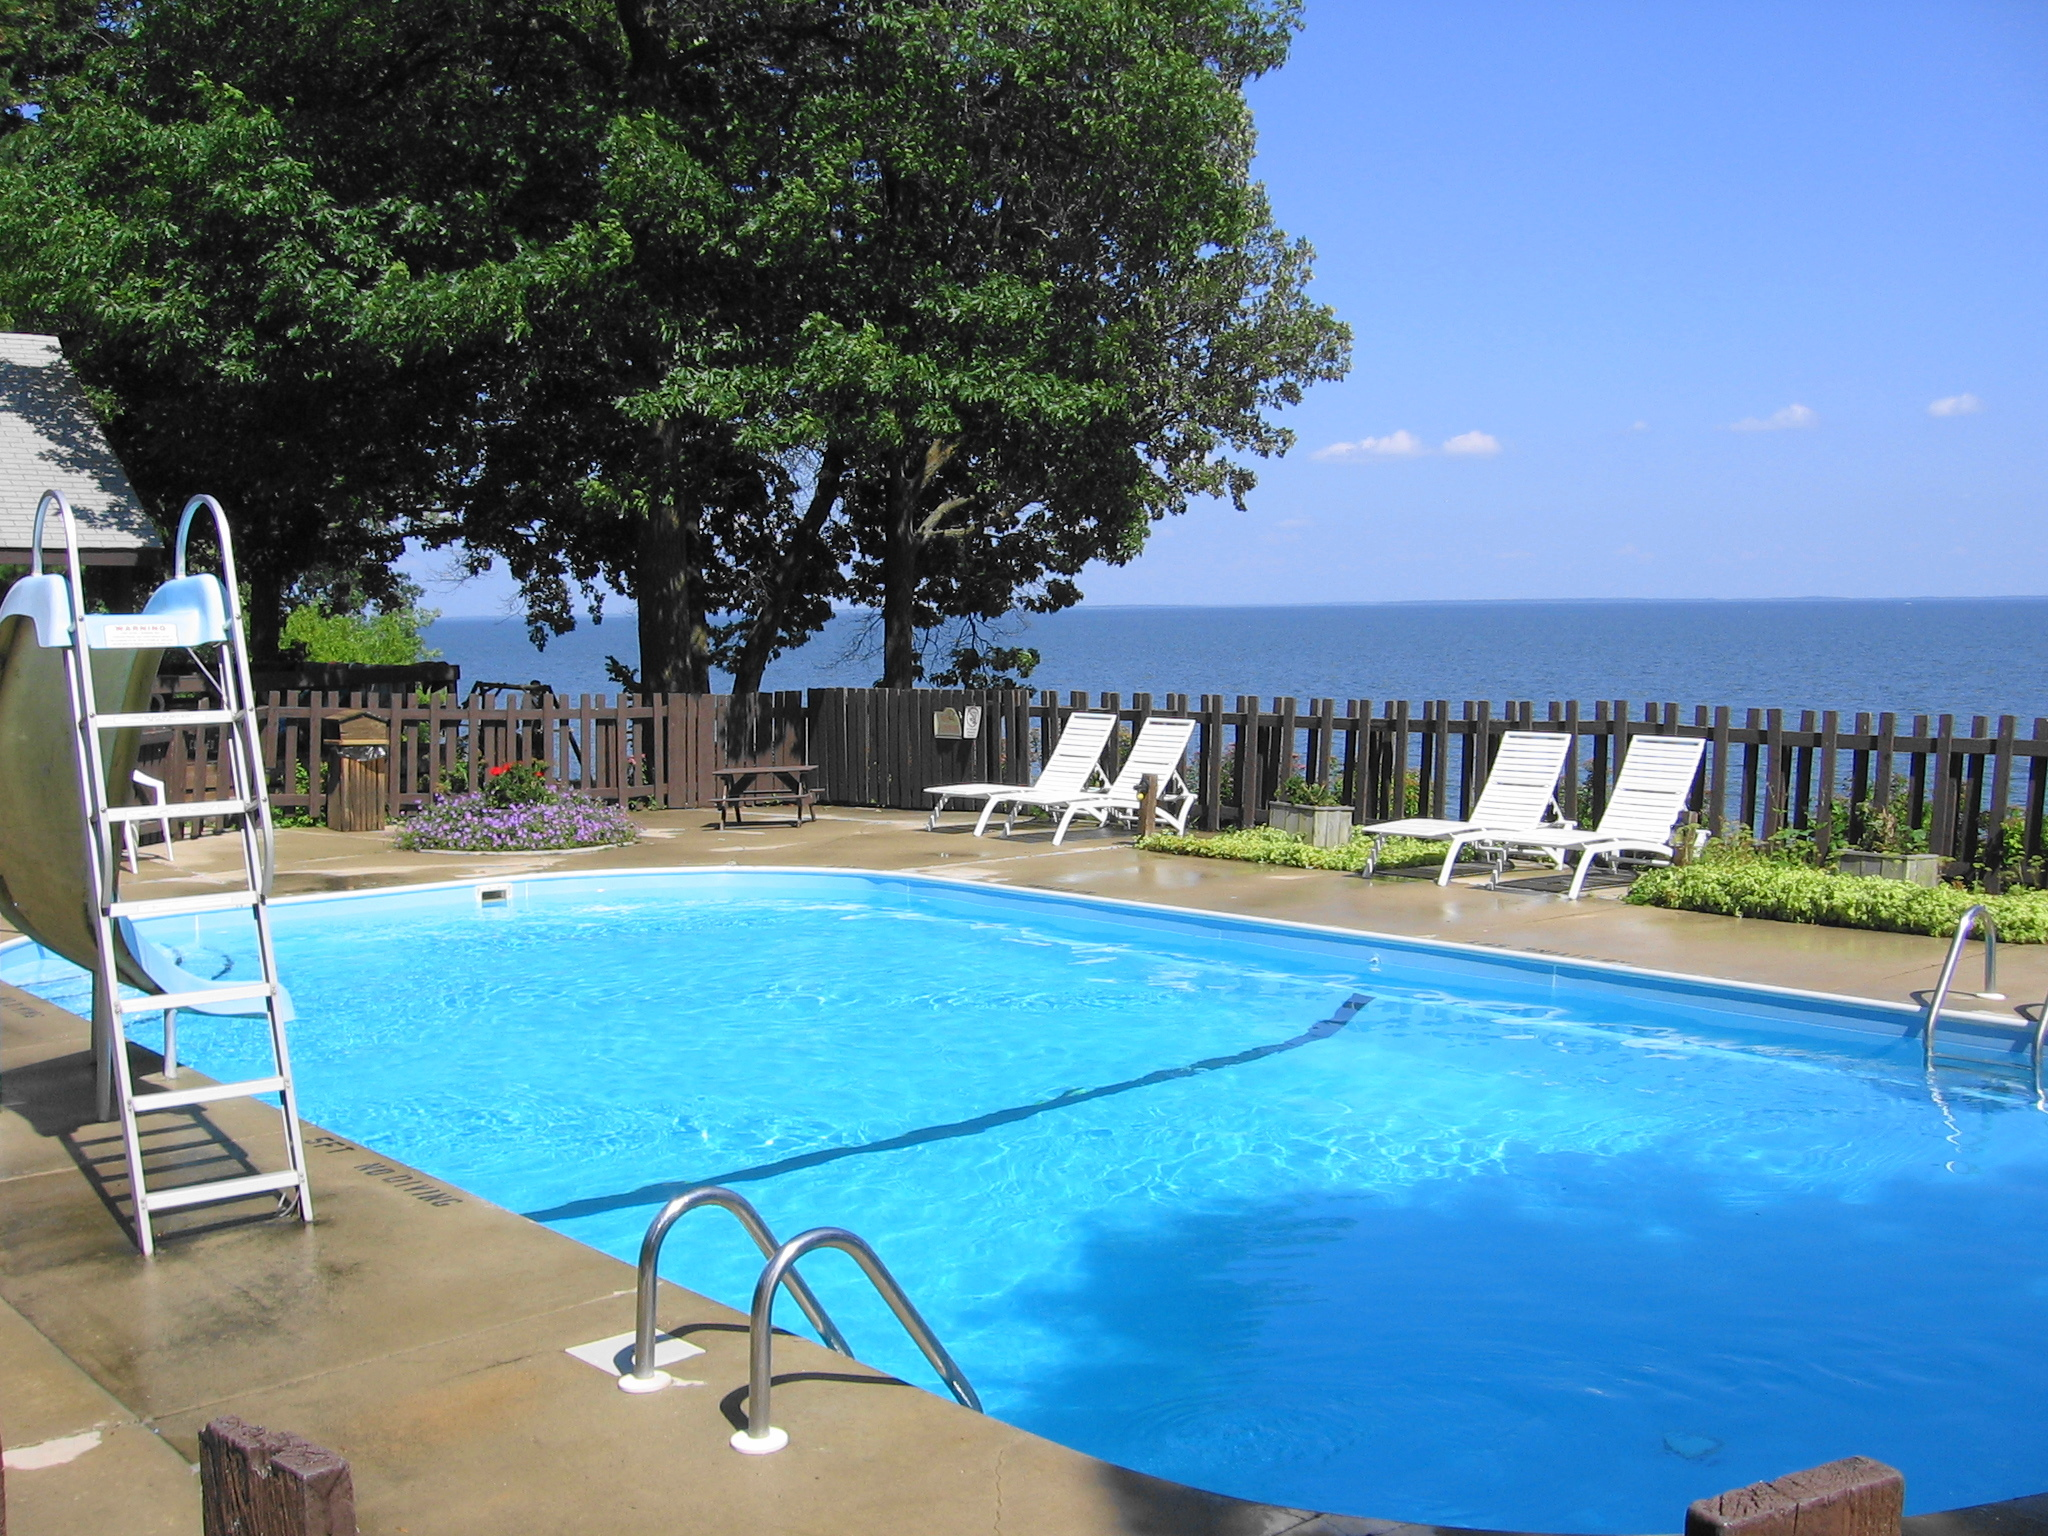 If you're looking for a resort with an in-ground pool near Walker, MN, look no further than Adventure North Resort!